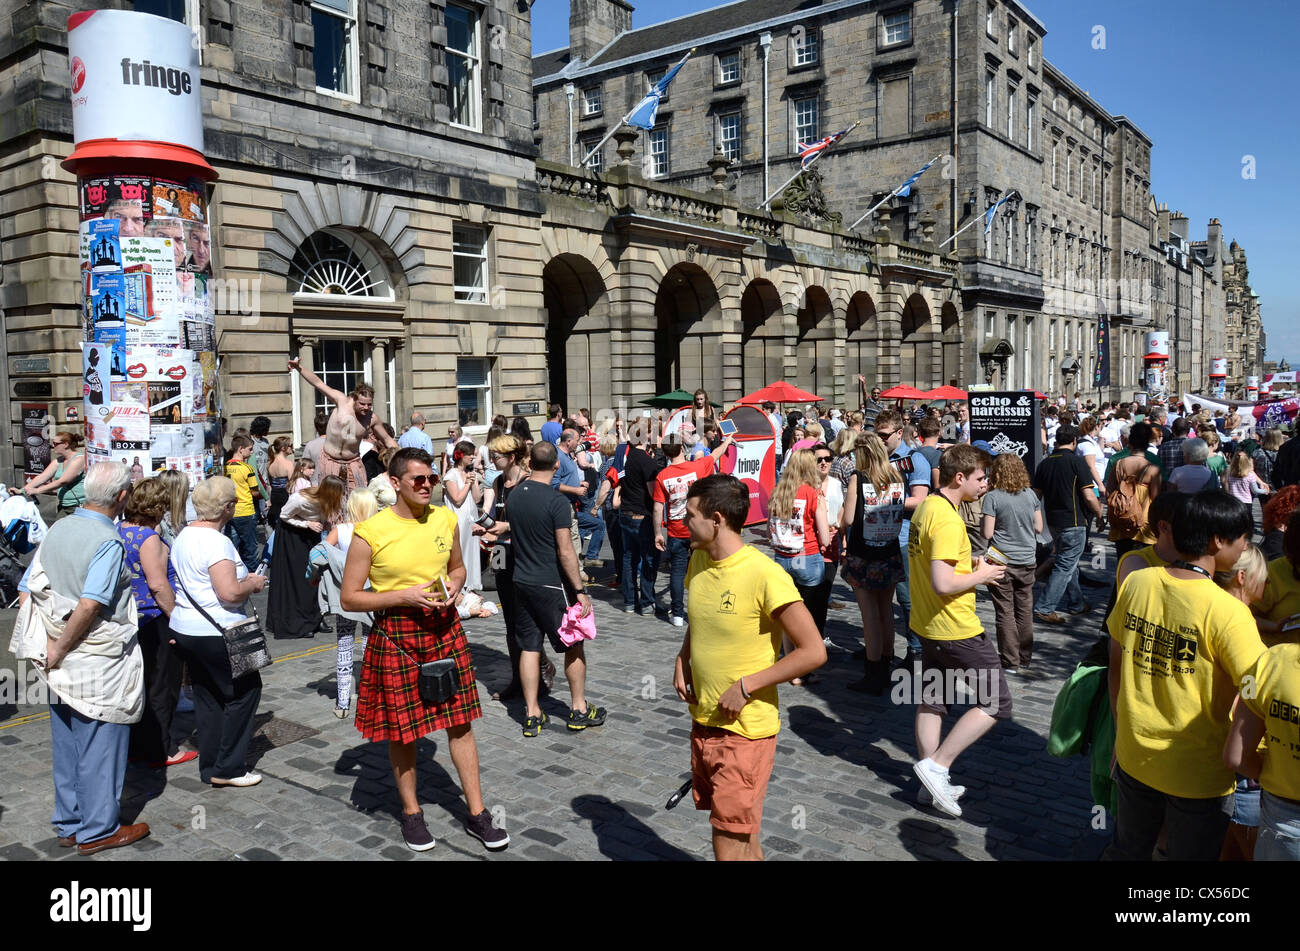 Festival goers and performers mingle on the Royal Mile during the annual Edinburgh Fringe Festival. - Stock Image